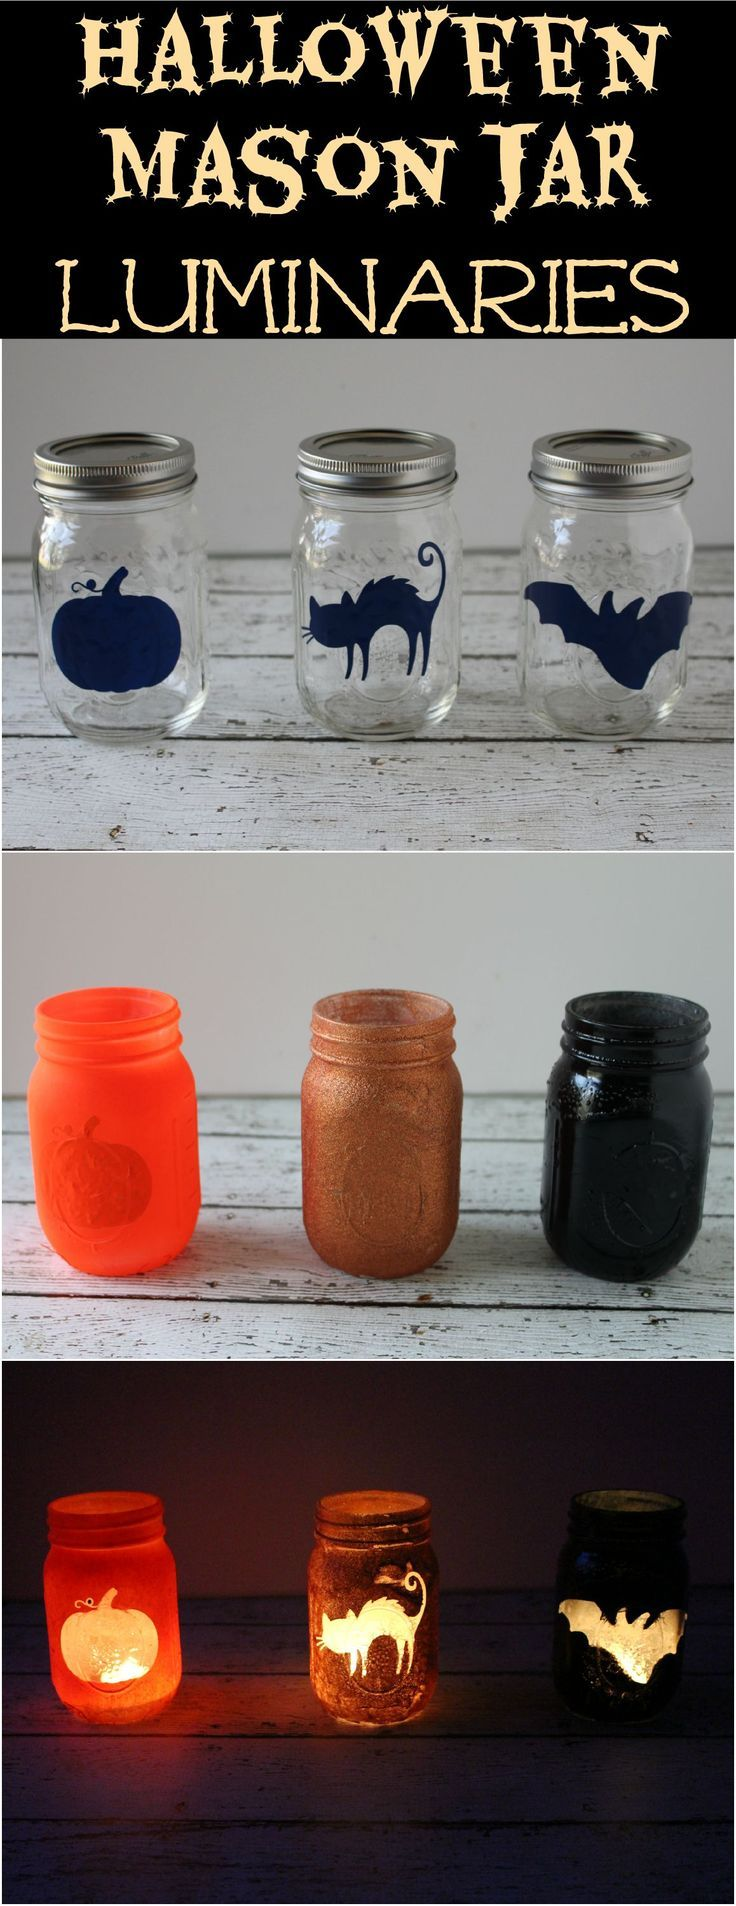 Not Interested in Carving Pumpkins? Make These Halloween Mason Jar Luminaries Instead